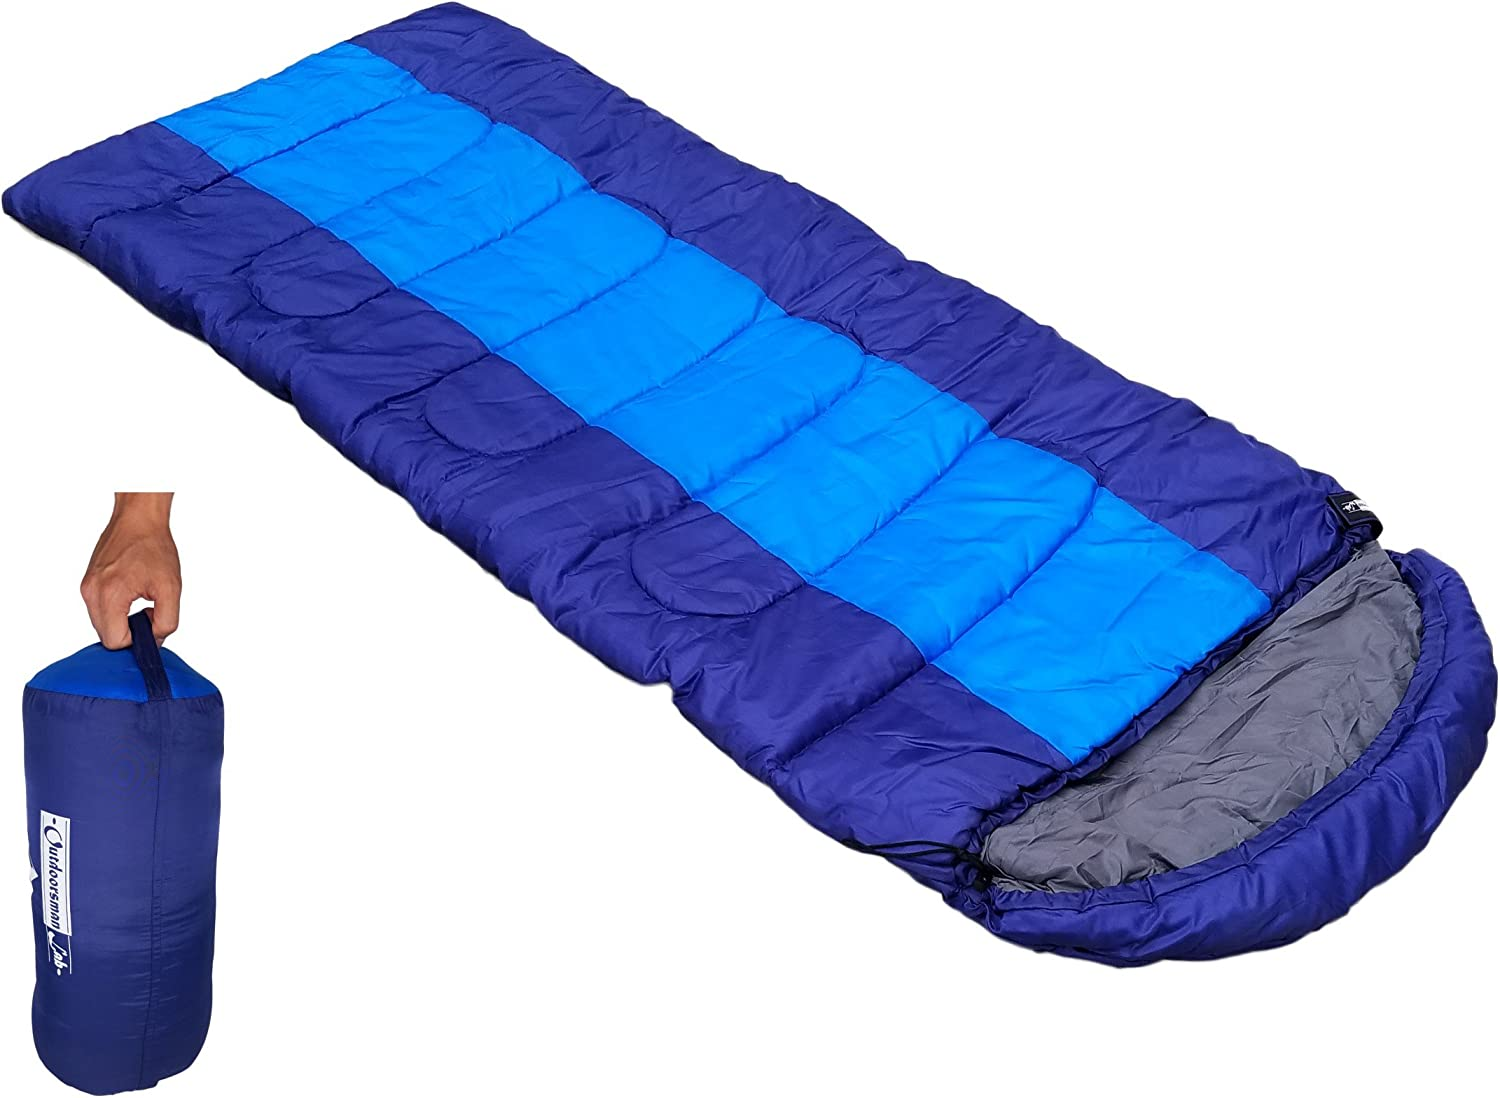 Outdoorsman Lab Sleeping Bag | Lightweight Backpacking & Camping Sleeping Bag for Adults & Kids | 3 Season, Durable Ripstop Nylon, Tear & ...